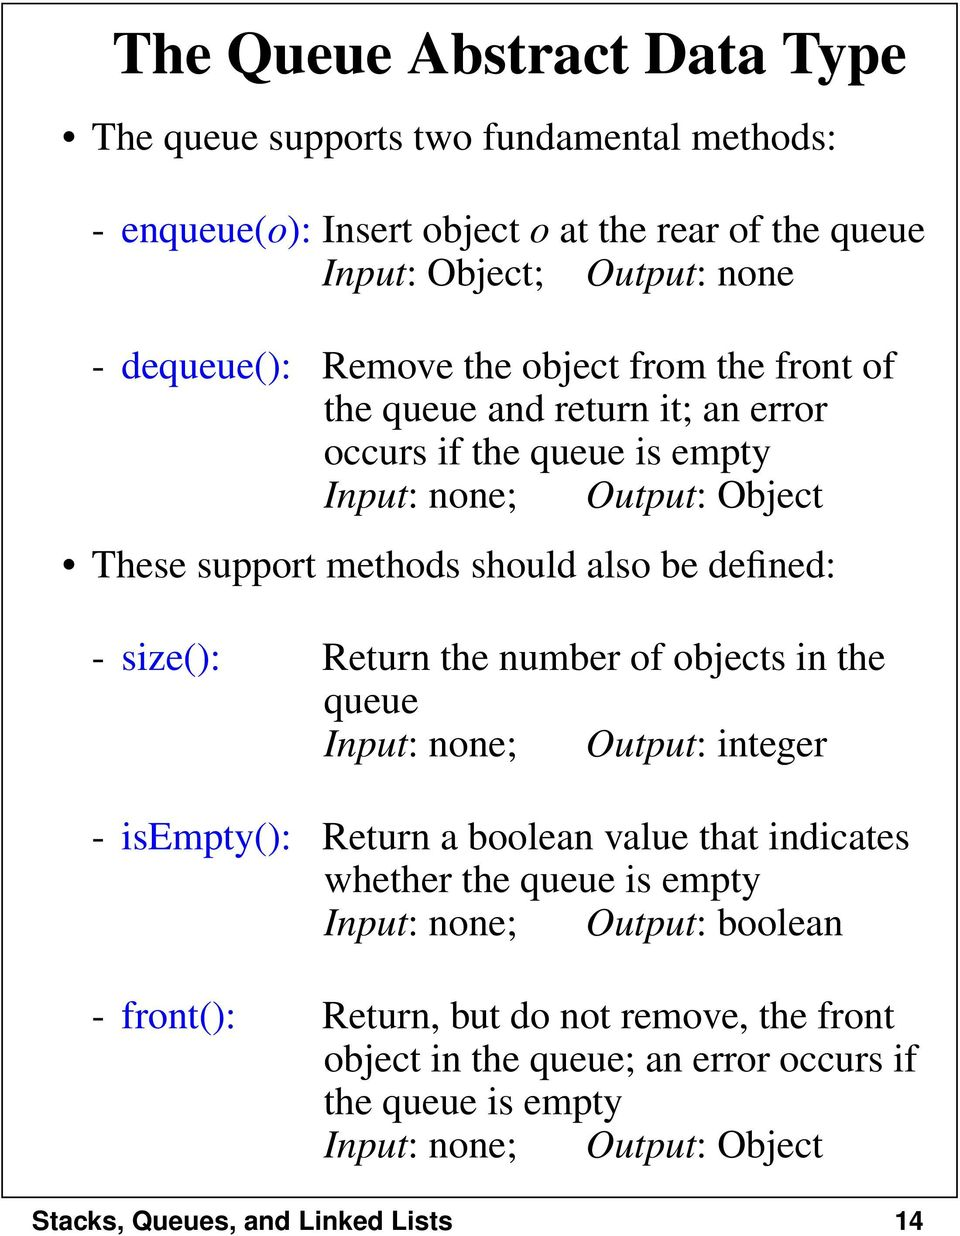 also be defined: - size(): Return the number of objects in the queue Input: none; Output: integer - isempty(): Return a boolean value that indicates whether the queue